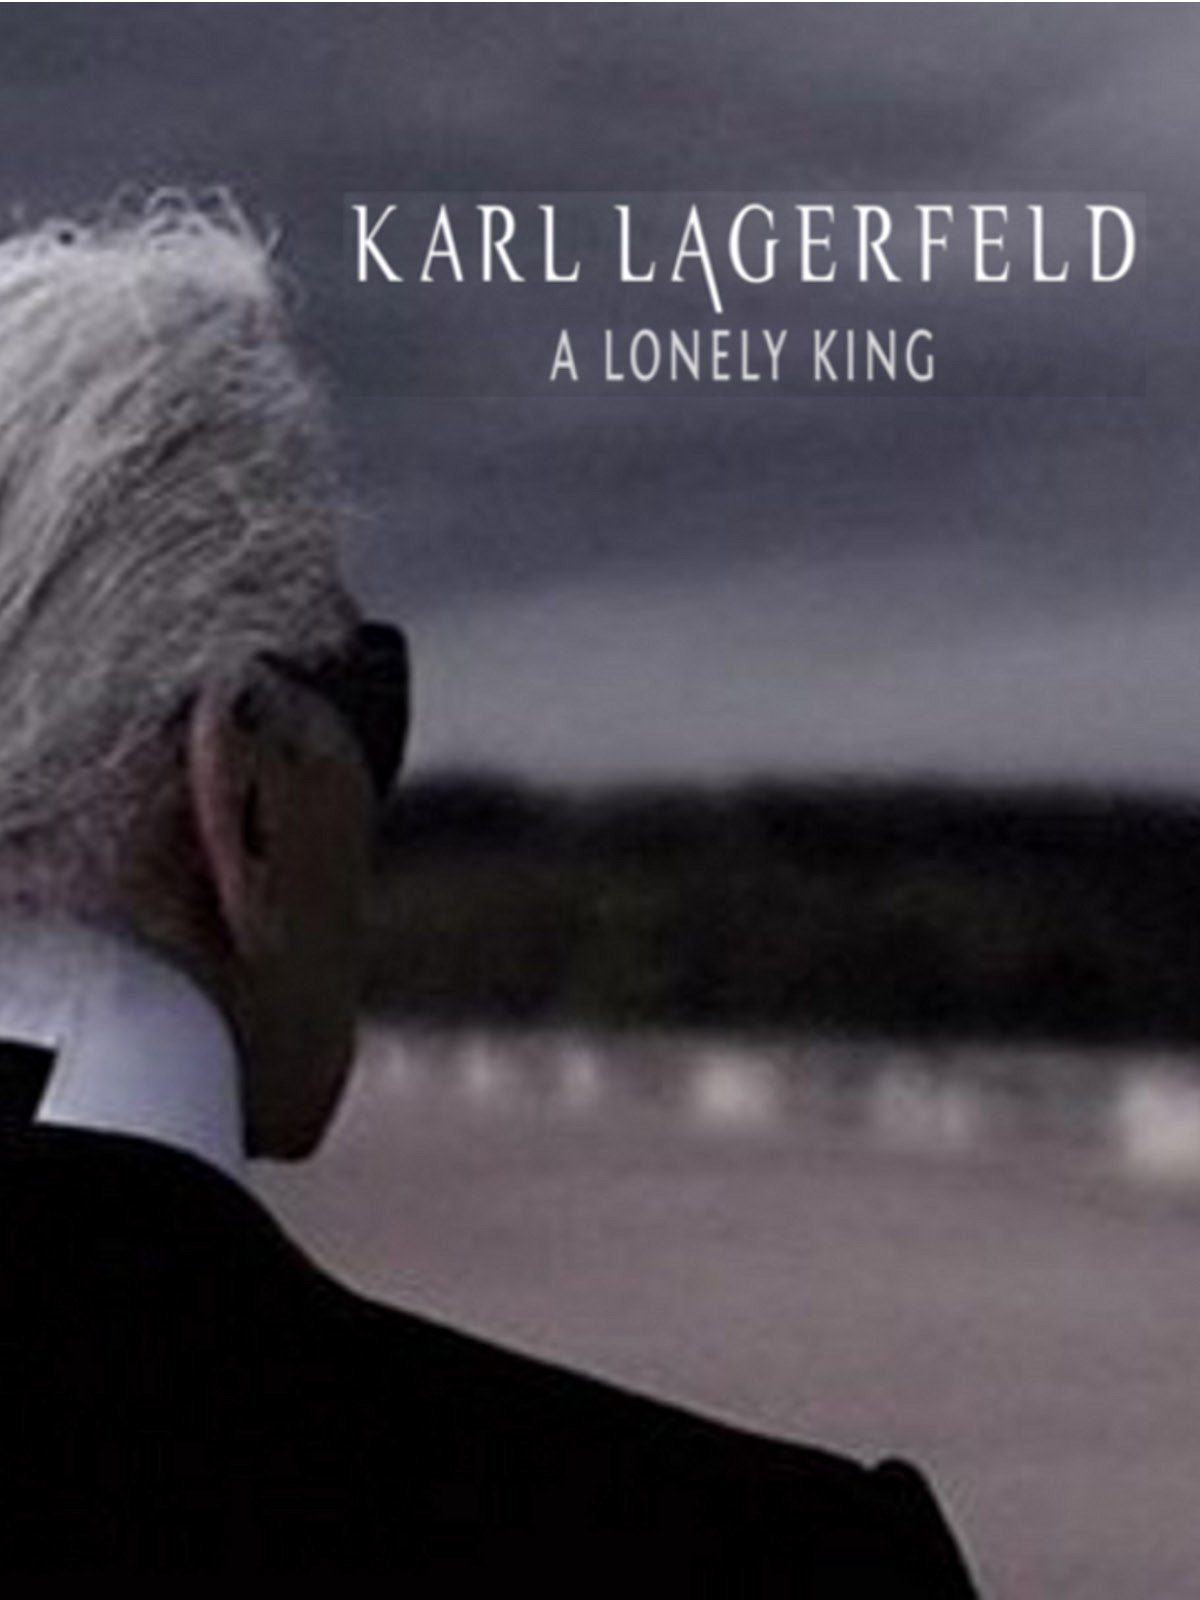 Karl Lagerfeld, a lonely king